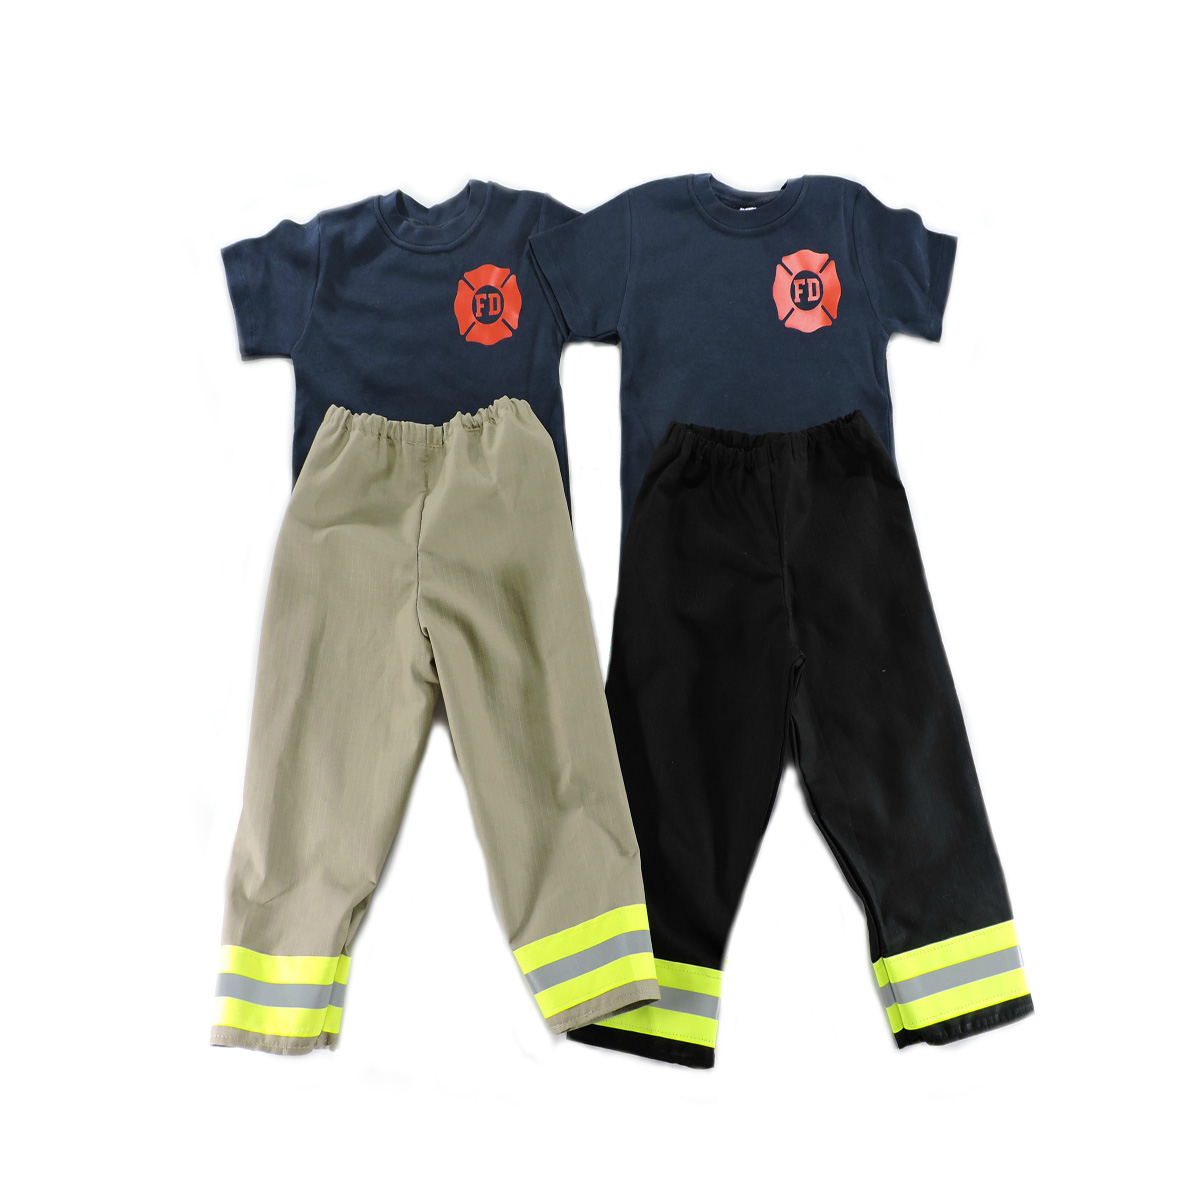 Firefighter-toddler-boy-outfit